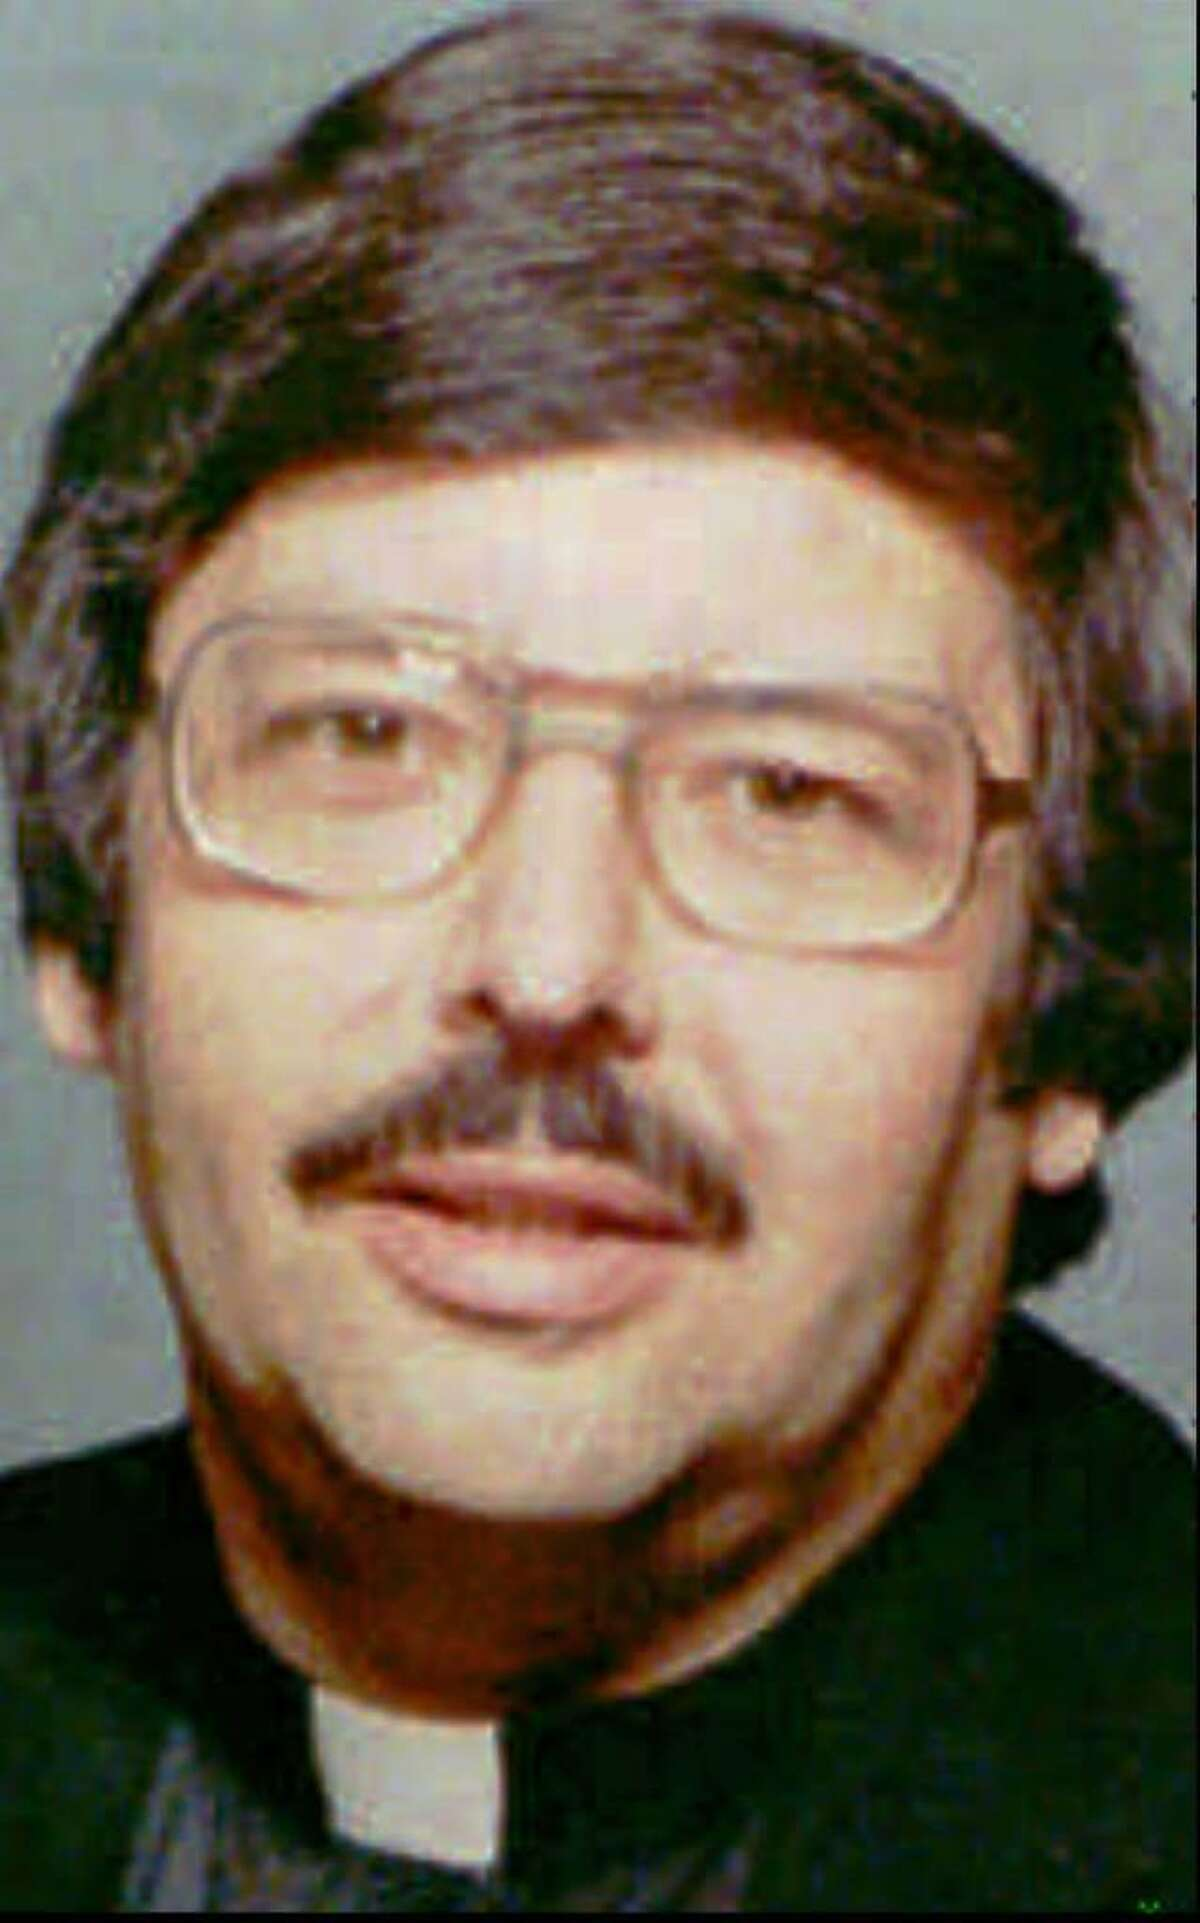 This is an undated file photo of the Rev. Raymond Pcolka, whose last assignment was as pastor of the Sacred Heart parish in the Byram section of Greenwich, Conn. In January 1993, 15 men and women filed civil lawsuits accusing Pcolka of sexually assaulting them when they were youngsters while he was an assistant pastor in Bridgeport and Stratford. Lawyers for the alleged victims and the Diocese of Bridgeport have been waging an intense, behind-the-scenes battle over what will be made public in the highly publicized case. (AP Photo/Connecticut Post, files)